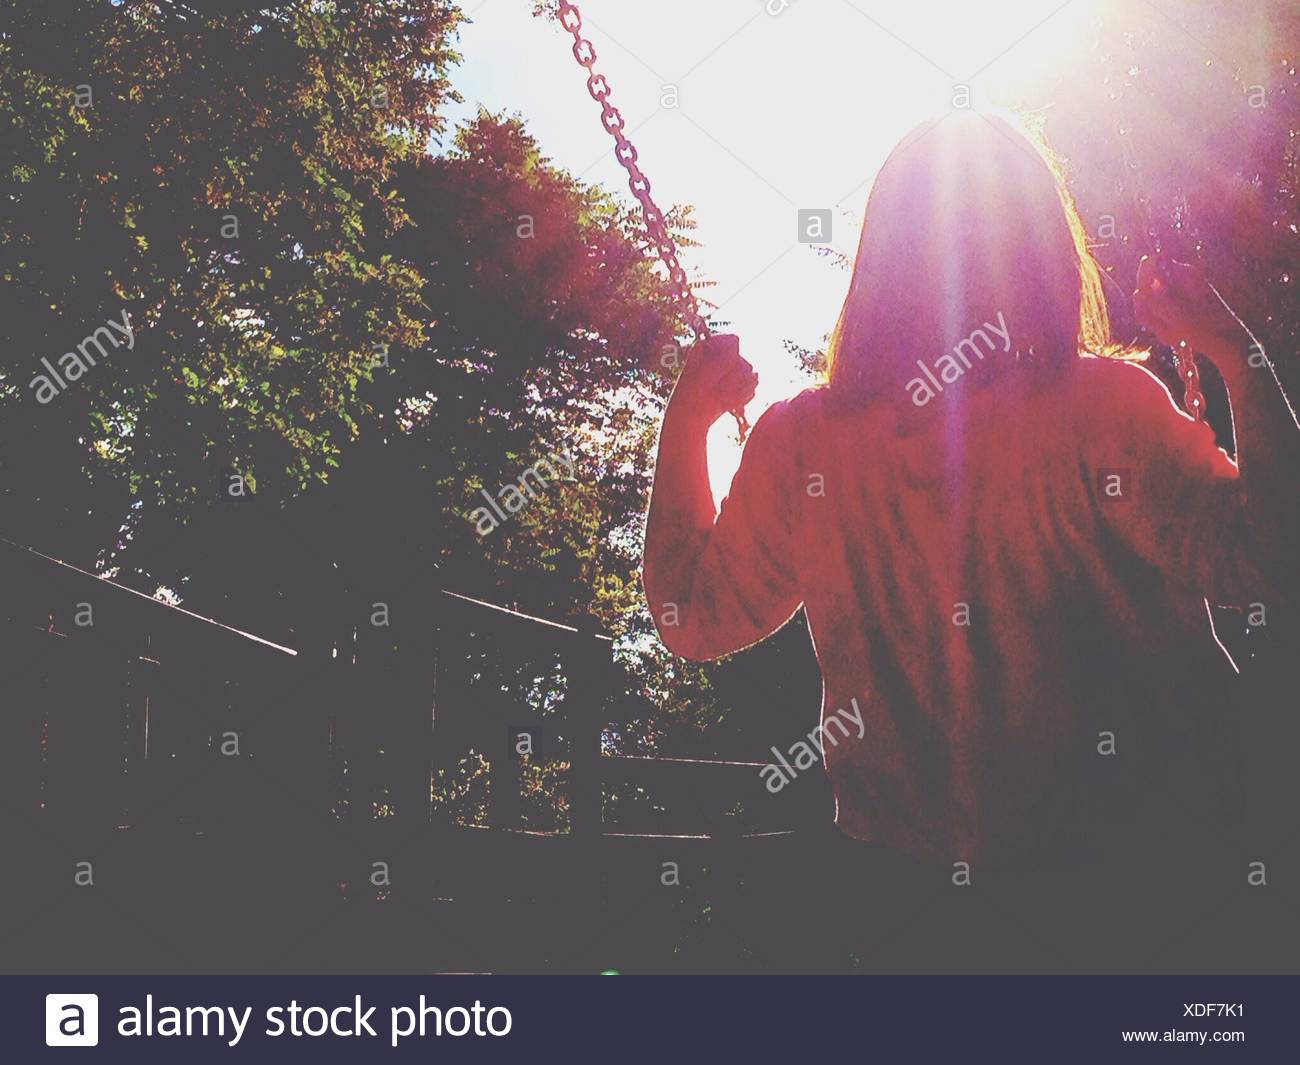 Rear View Of Girl Swinging On Sunny Day - Stock Image